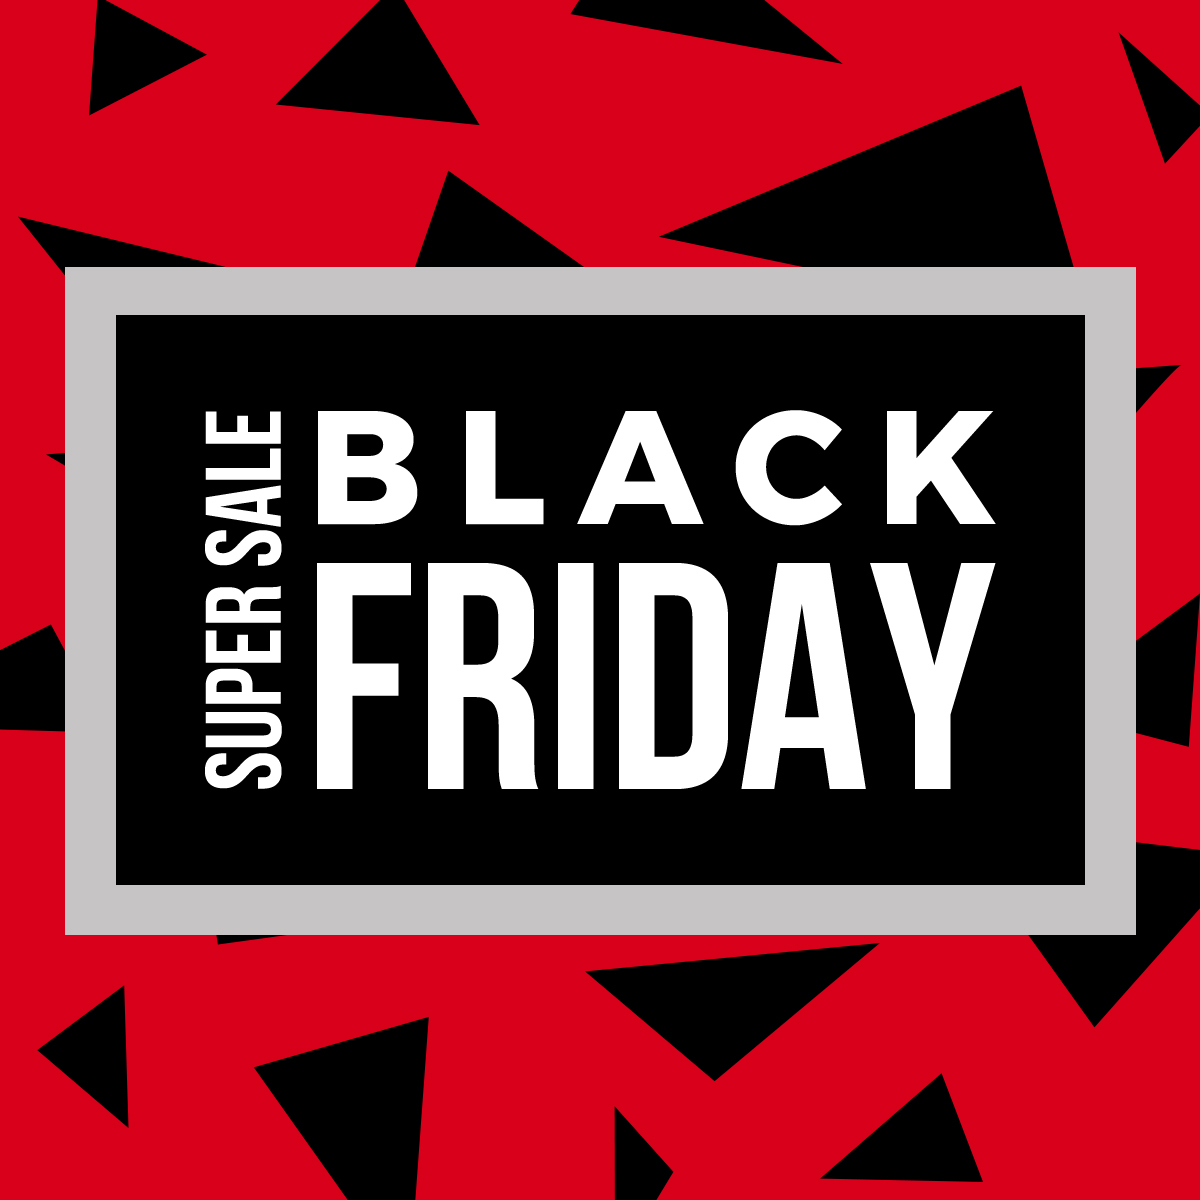 e2b8feb7c Black Friday sale 2018 for All HVAC Products Maintenance Services